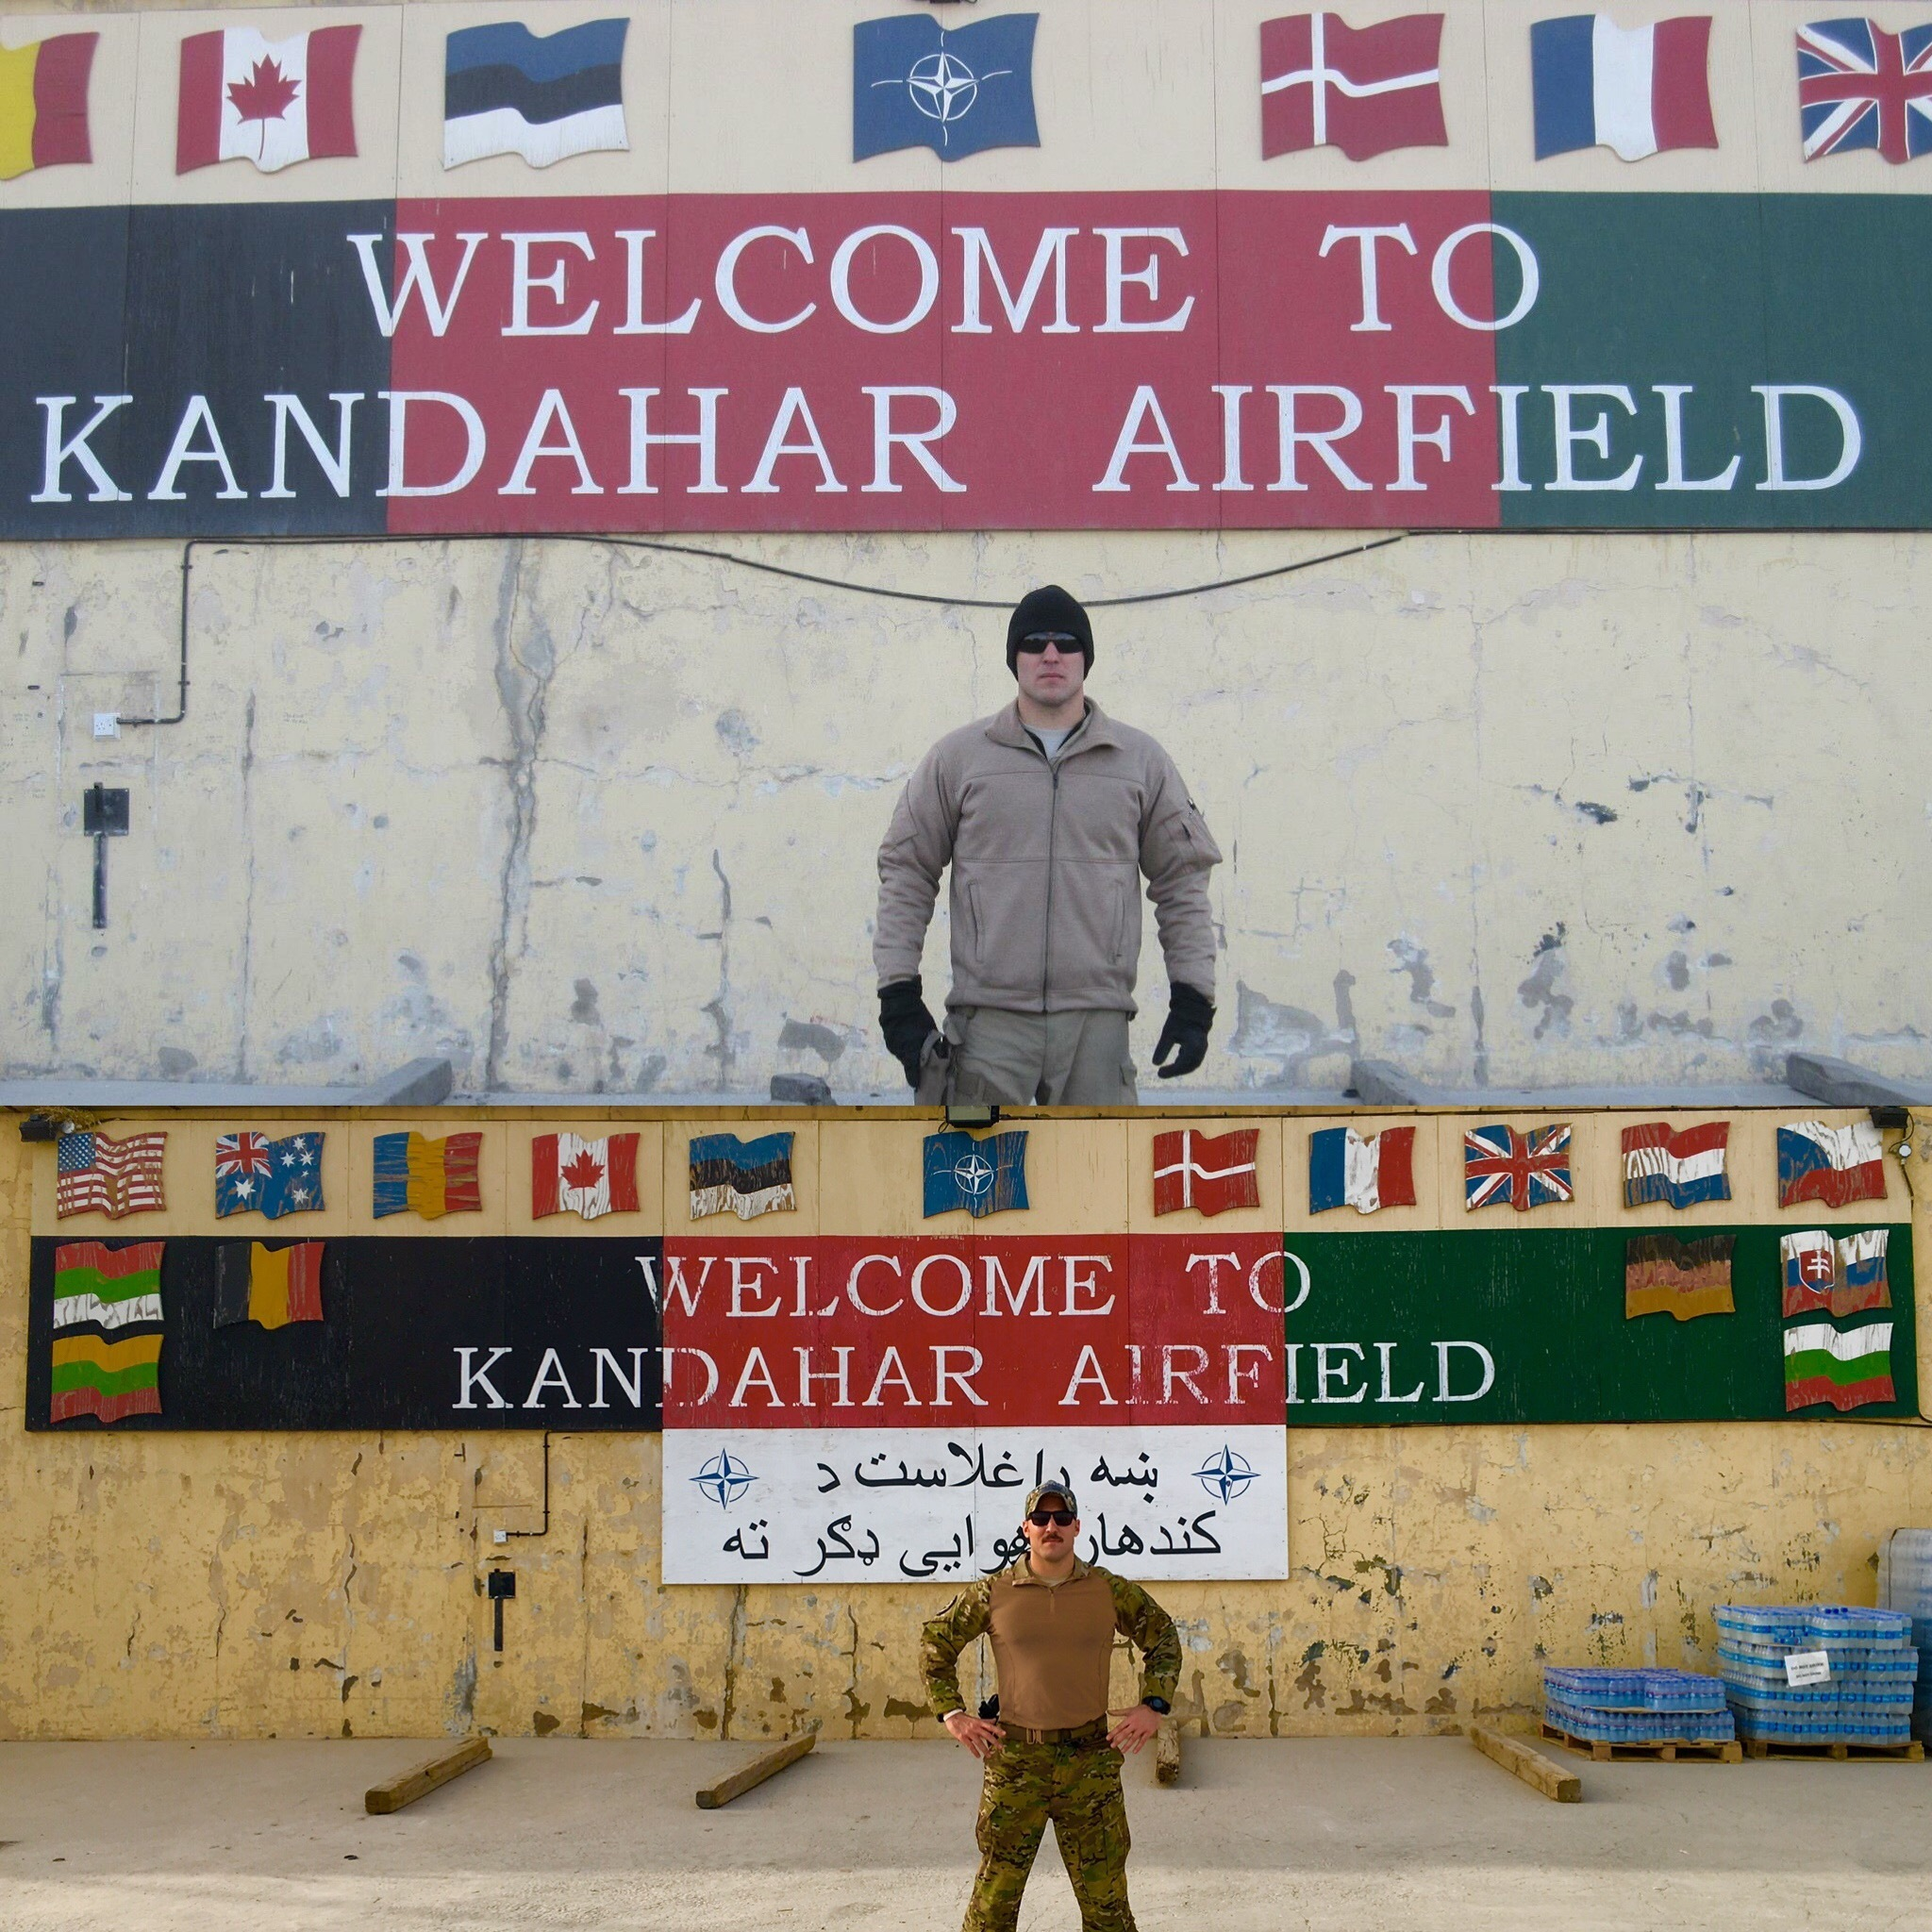 U.S. Air Force Staff Sgt. Kade Bollinger poses for a photo during his first deployment to Afghanistan in 2011 and Tech. Sgt. Bollinger poses for the same photo during his second deployment to Afghanistan in 2016, at Kandahar Airfield. (Courtesy photo)